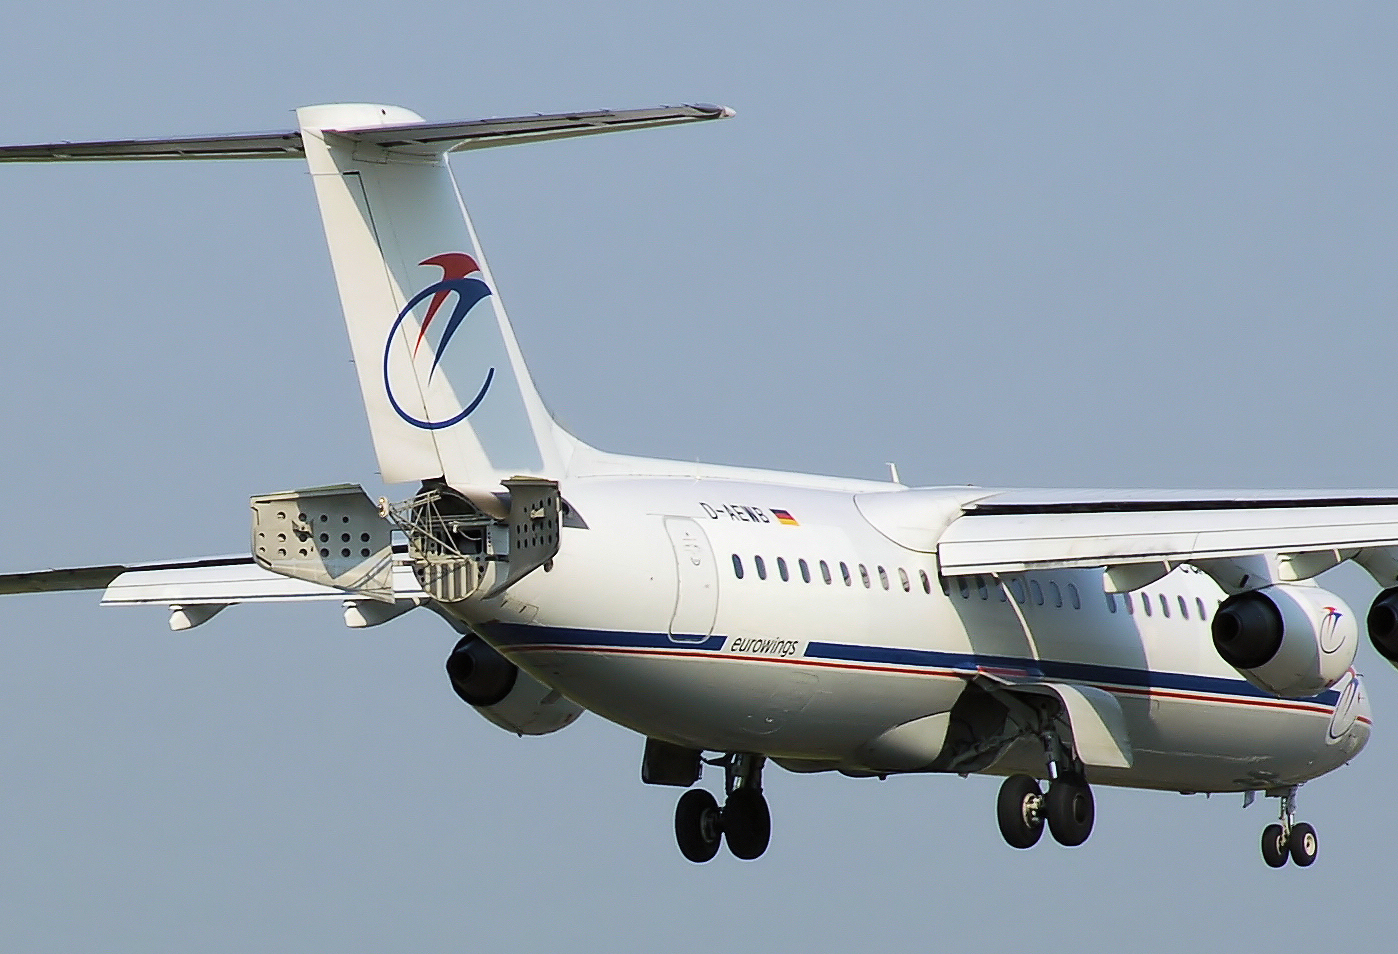 British Aerospace BAe-146 #6